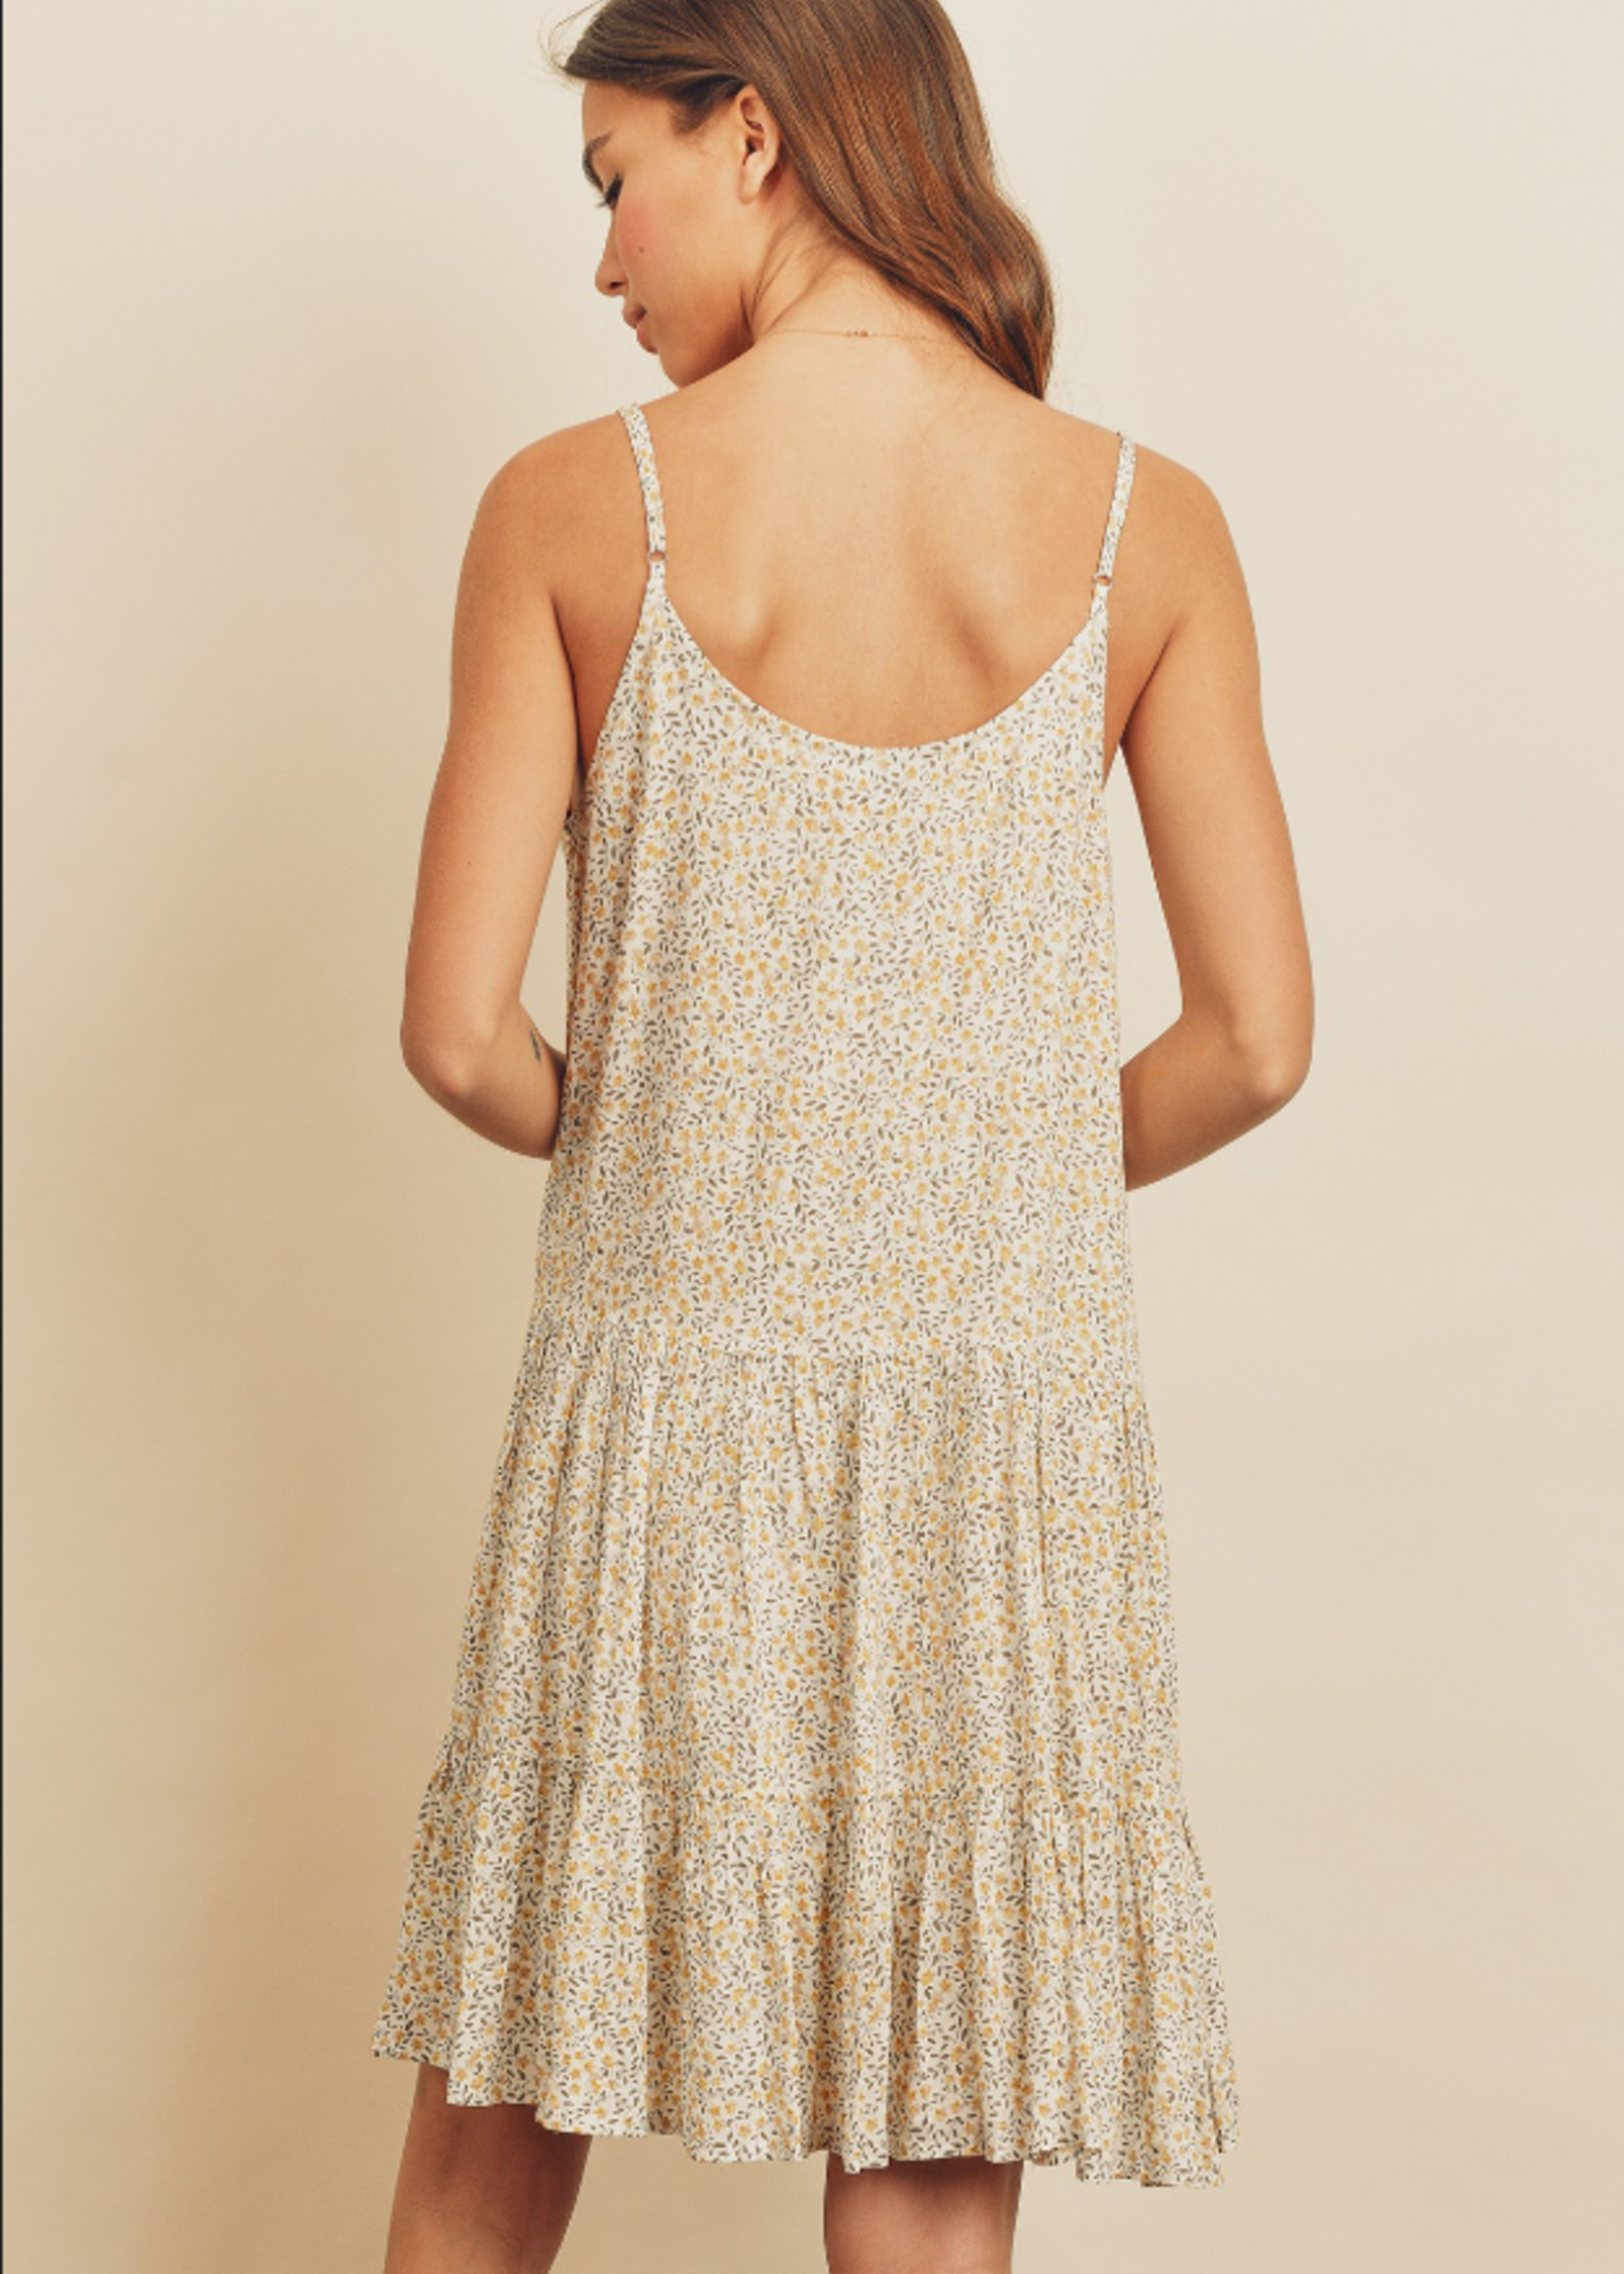 Tiered Floral Dress - Ivory/Yellow